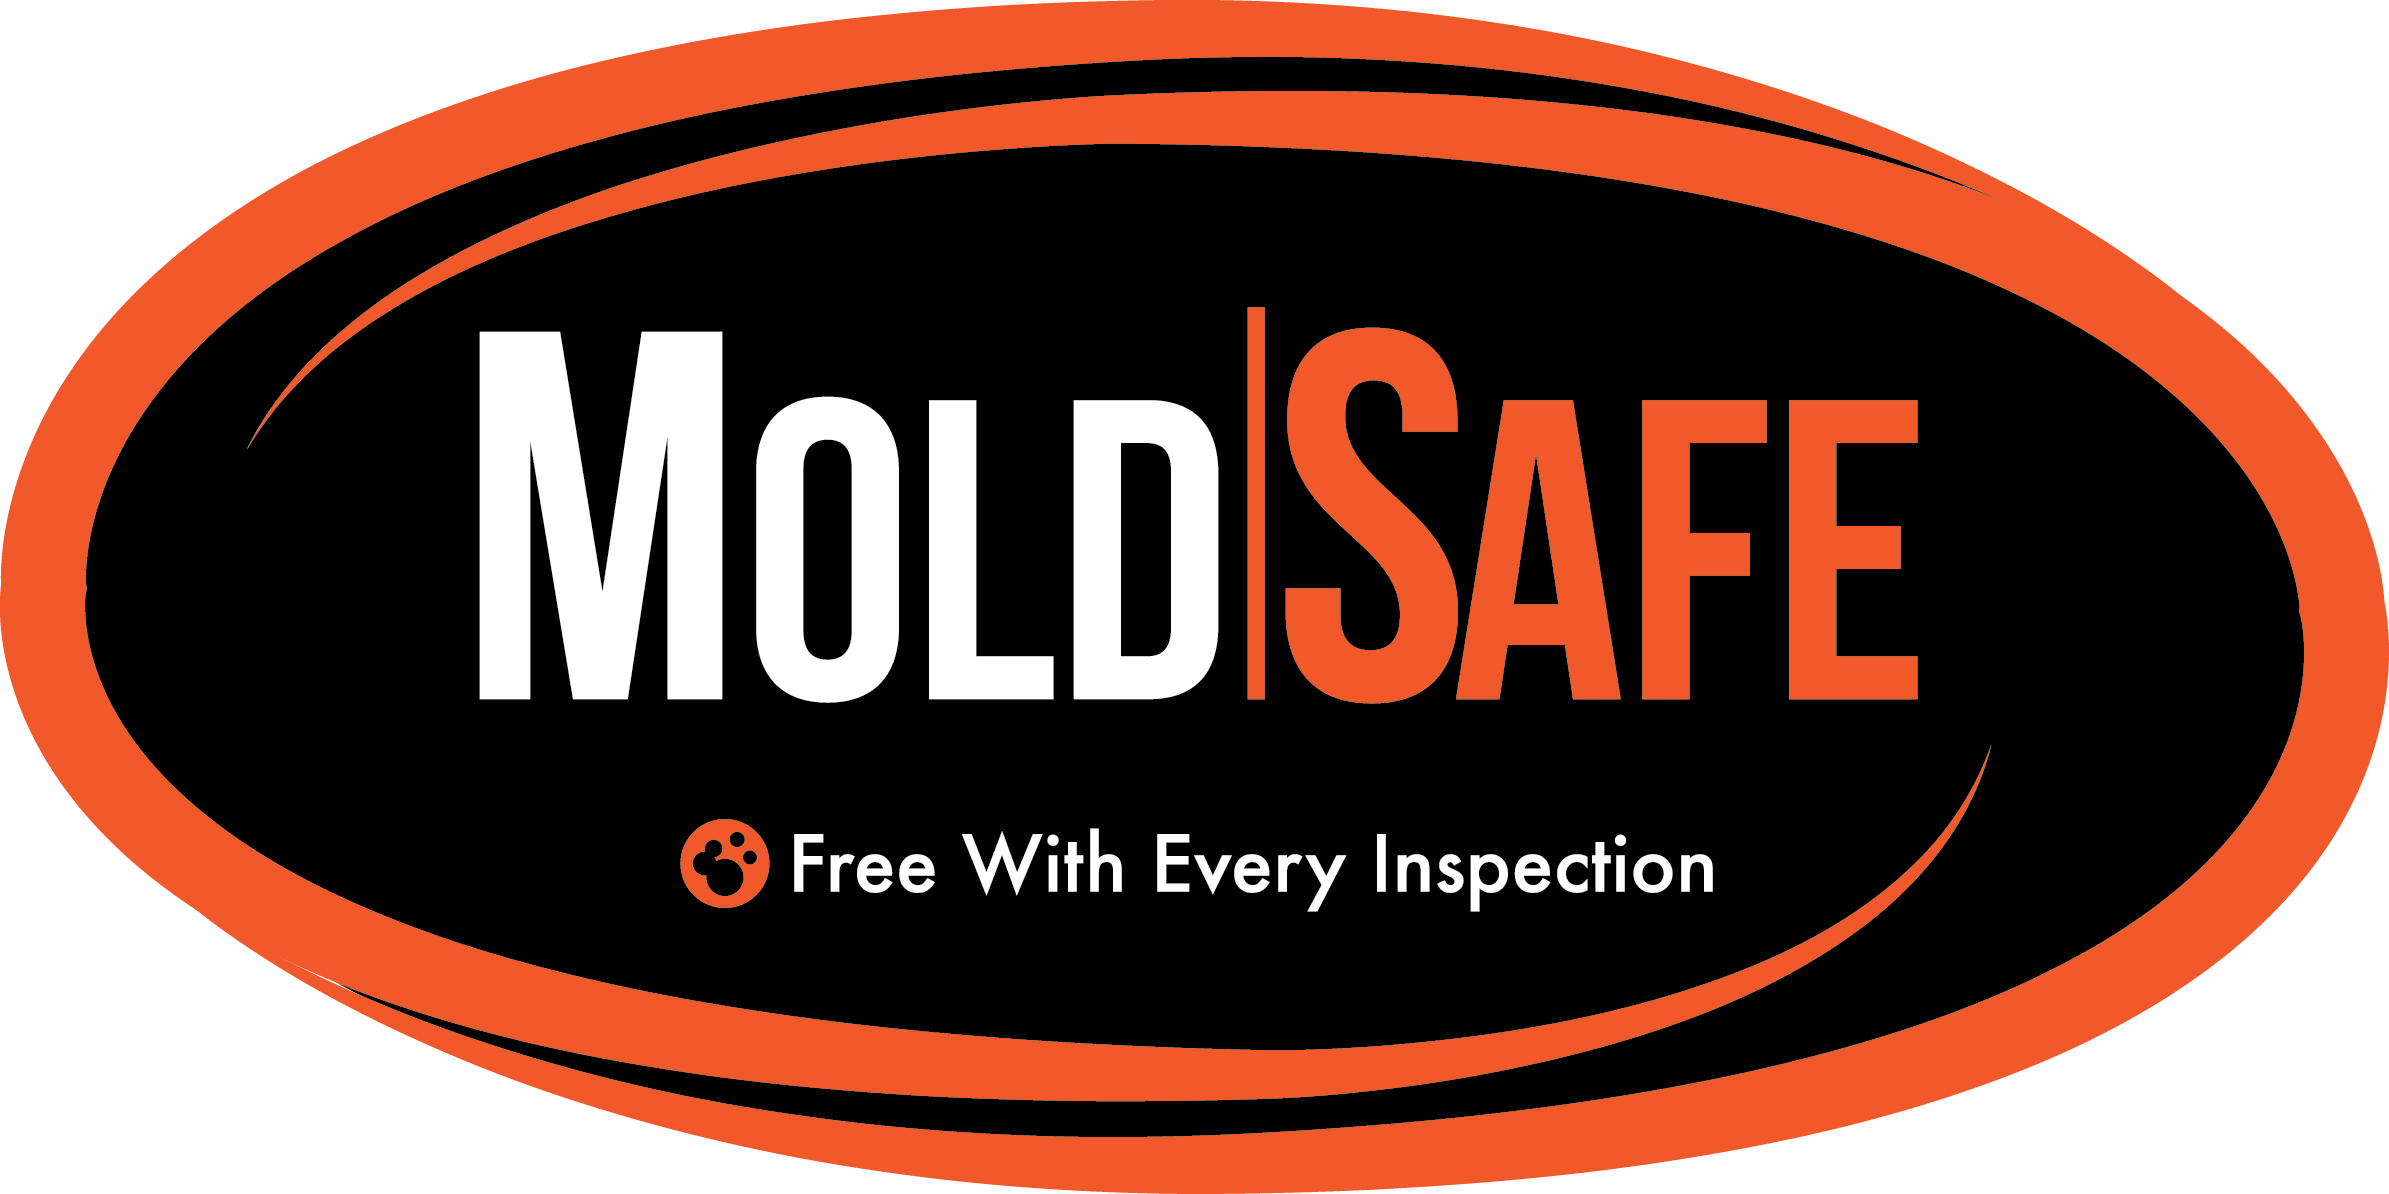 Five Point Protection Plan covers mold behind prior occupants personal belongings